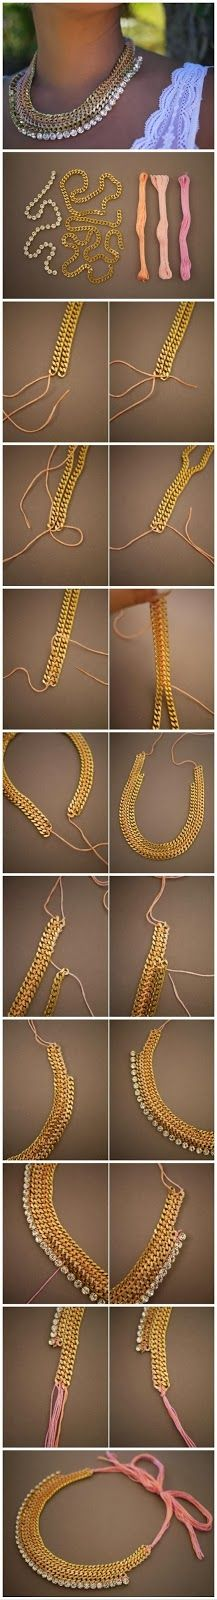 Easy DIY Crafts: DIY Necklace